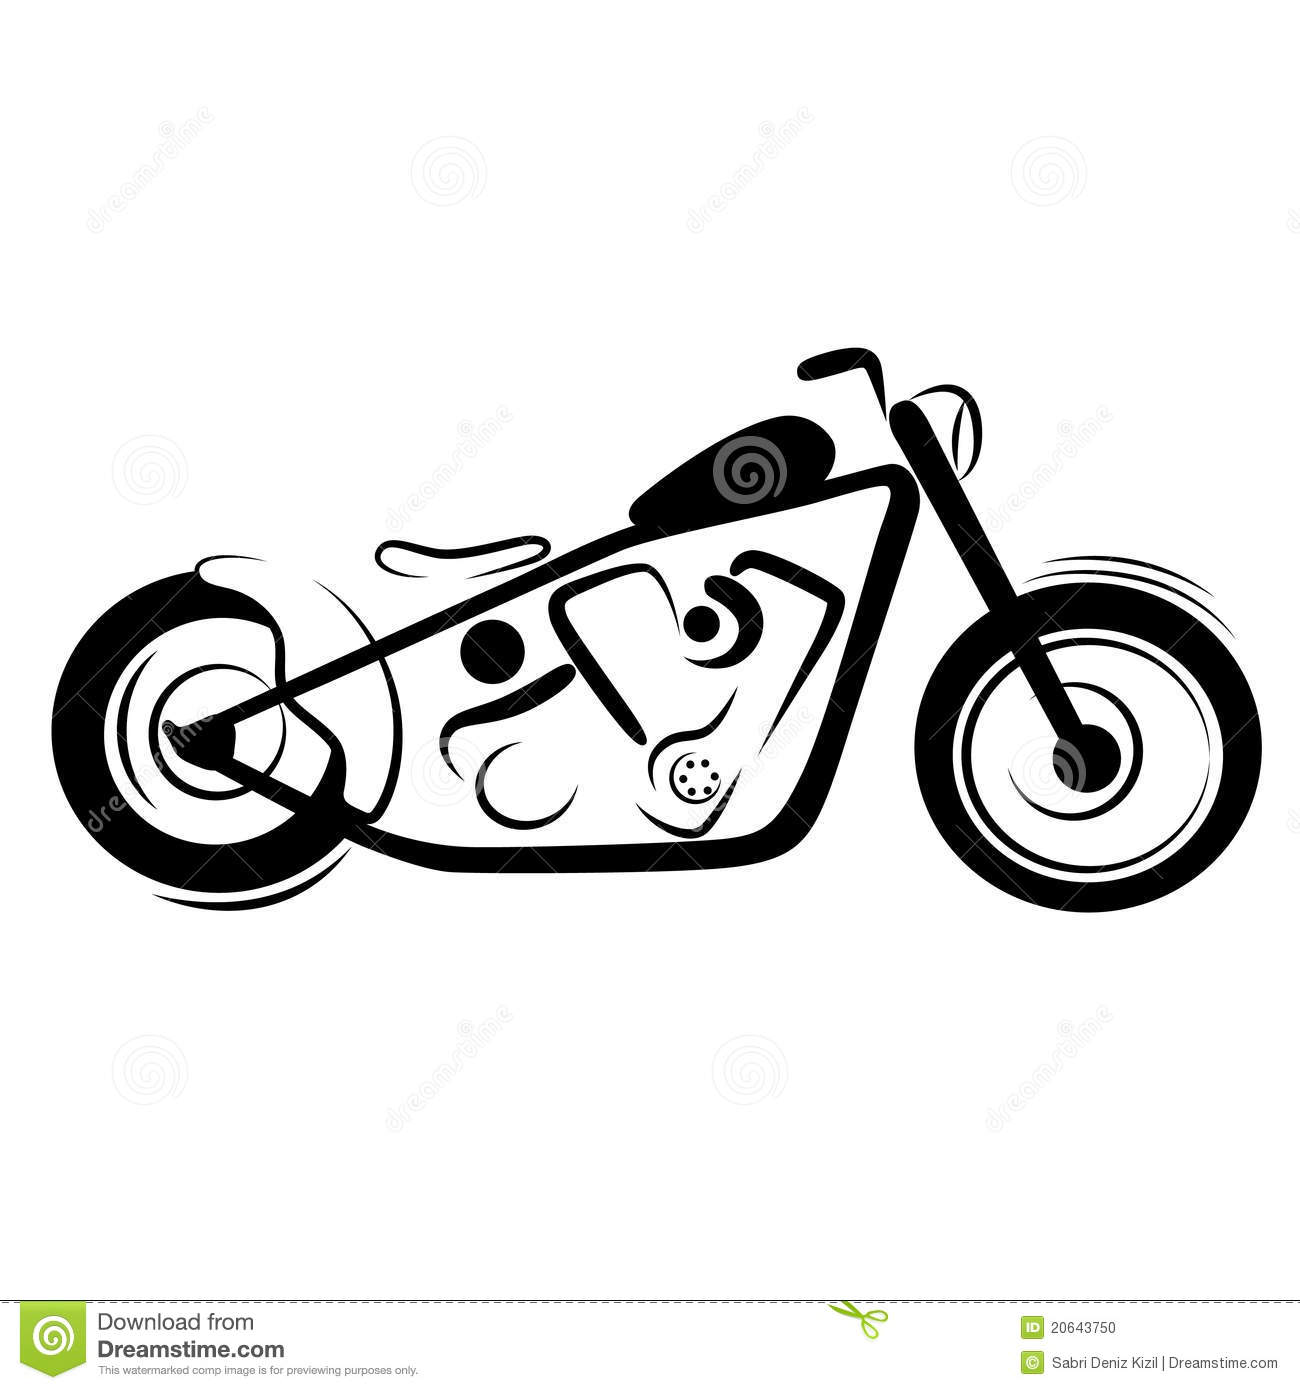 Chopper Motorcycle Stock Vector Illustration Of Isolated